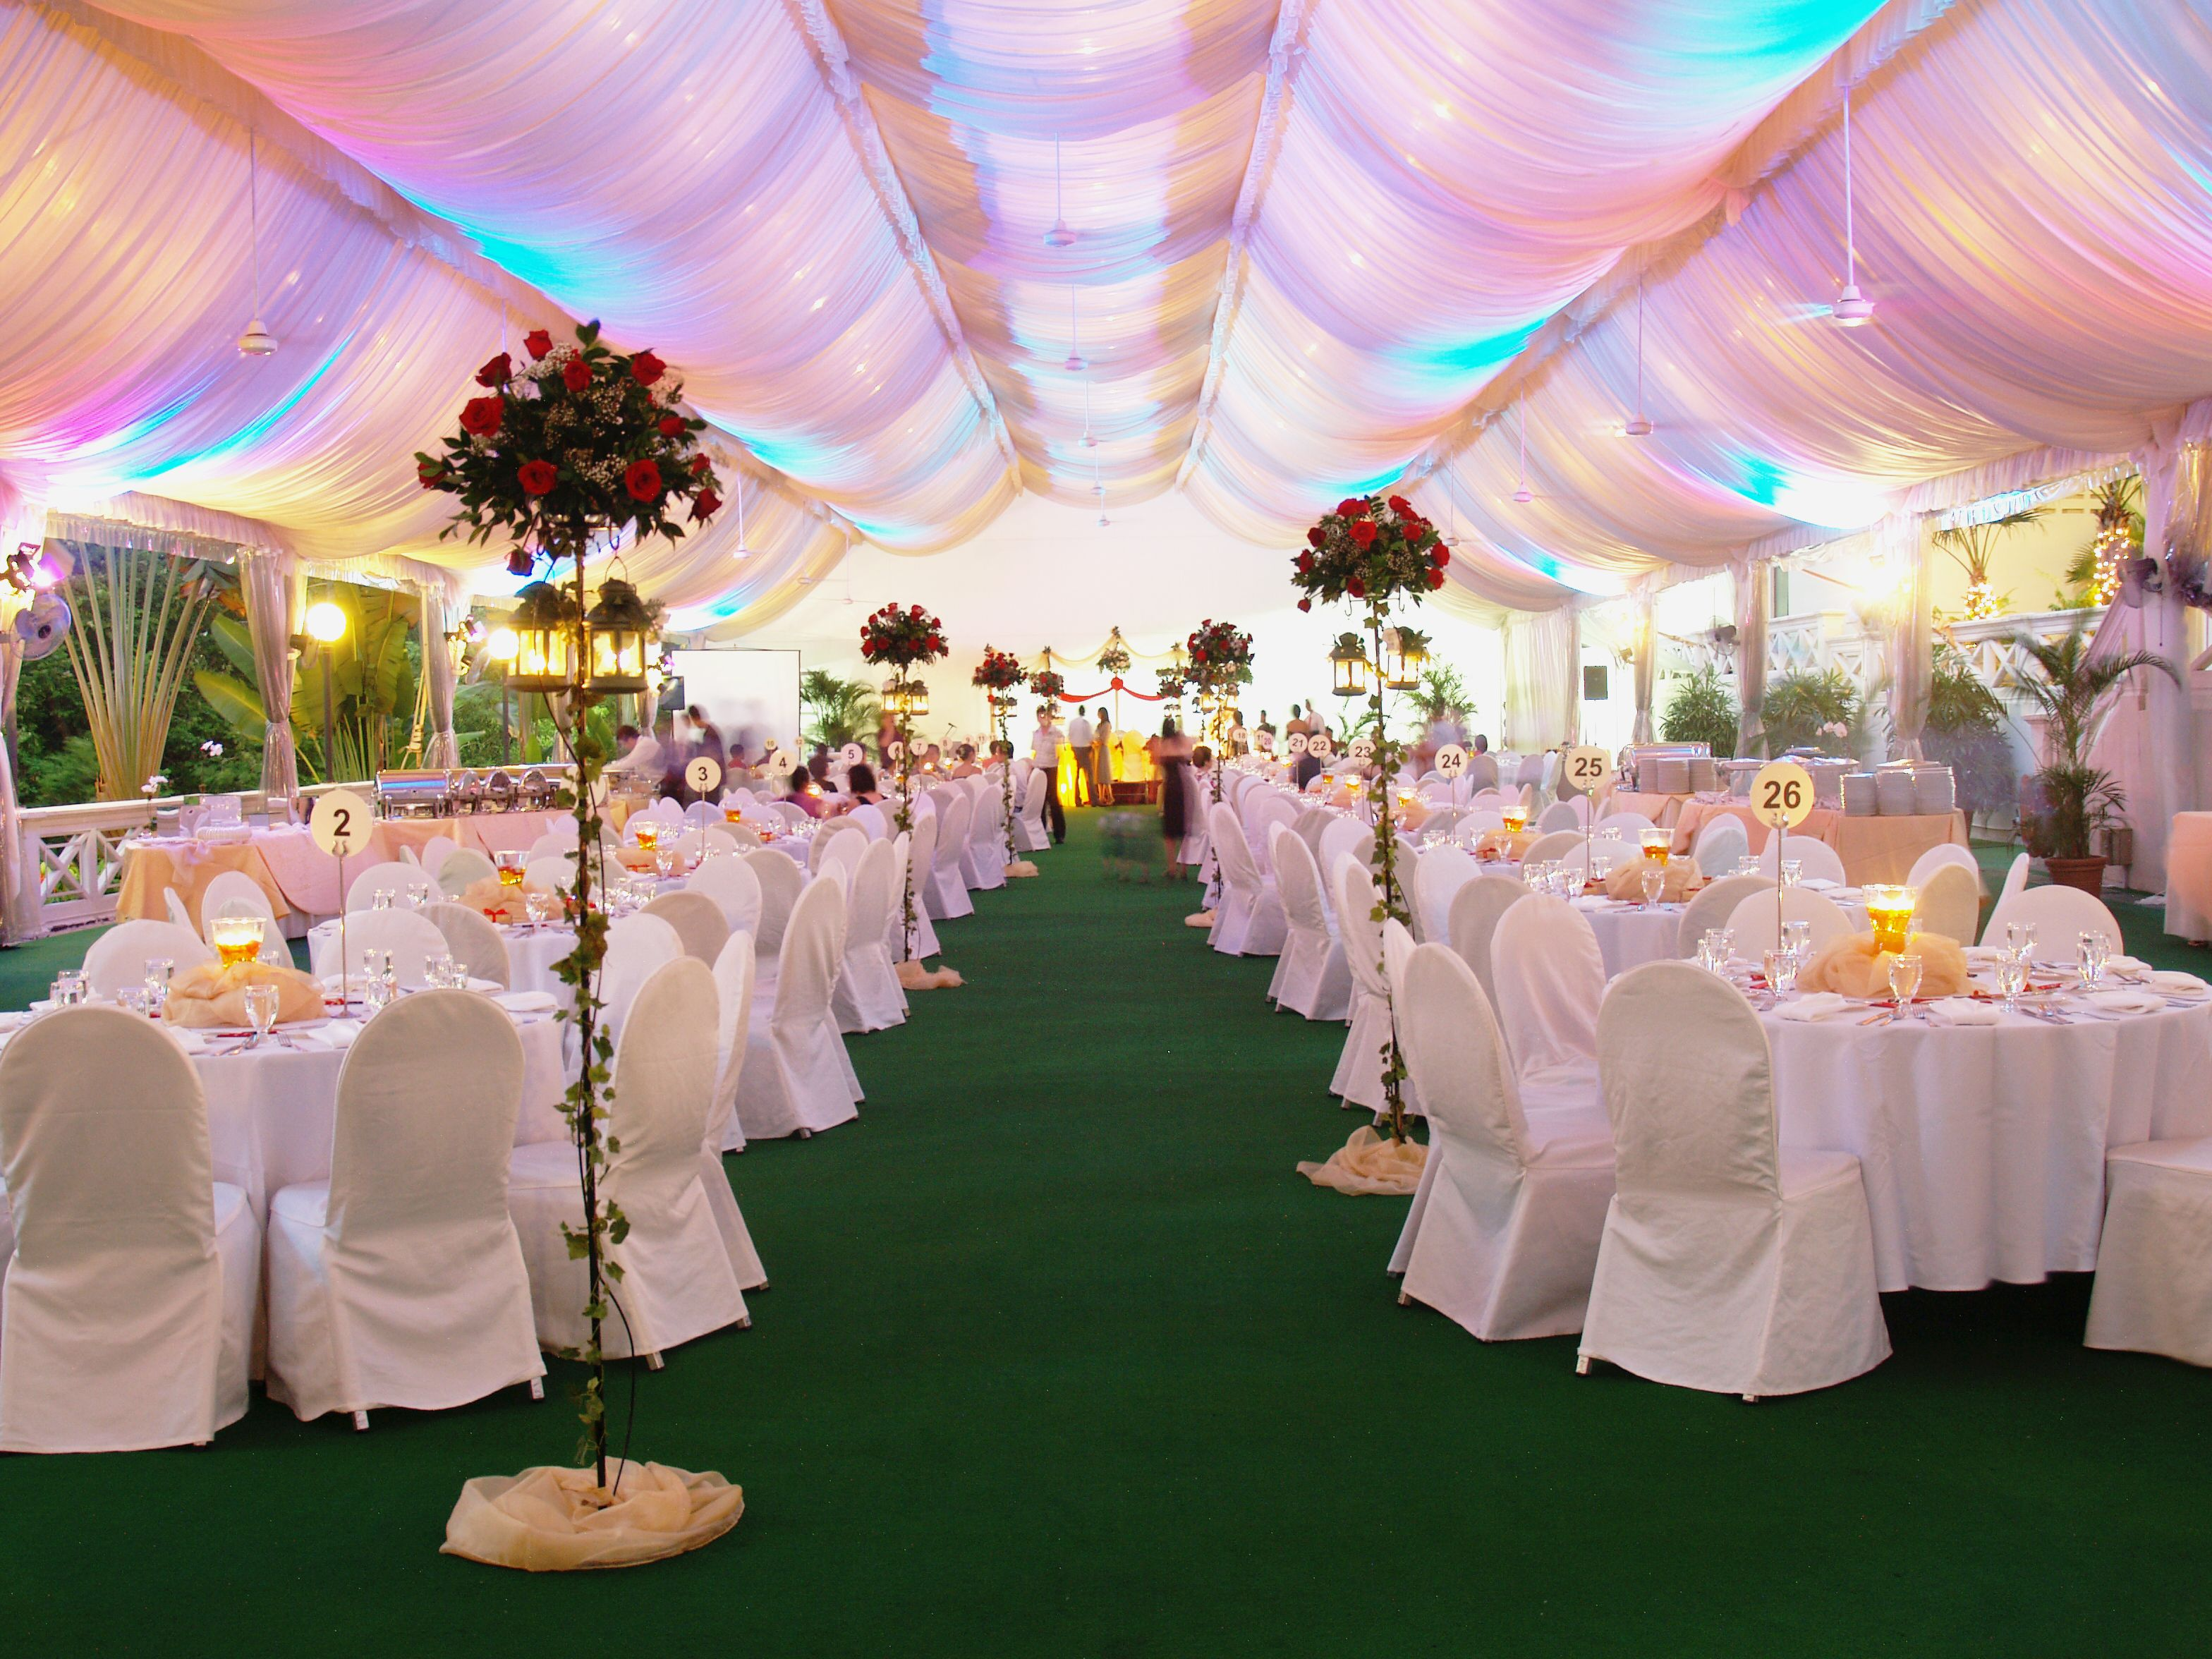 Weddings In The Park Outdoor Celebrations Under Marquee